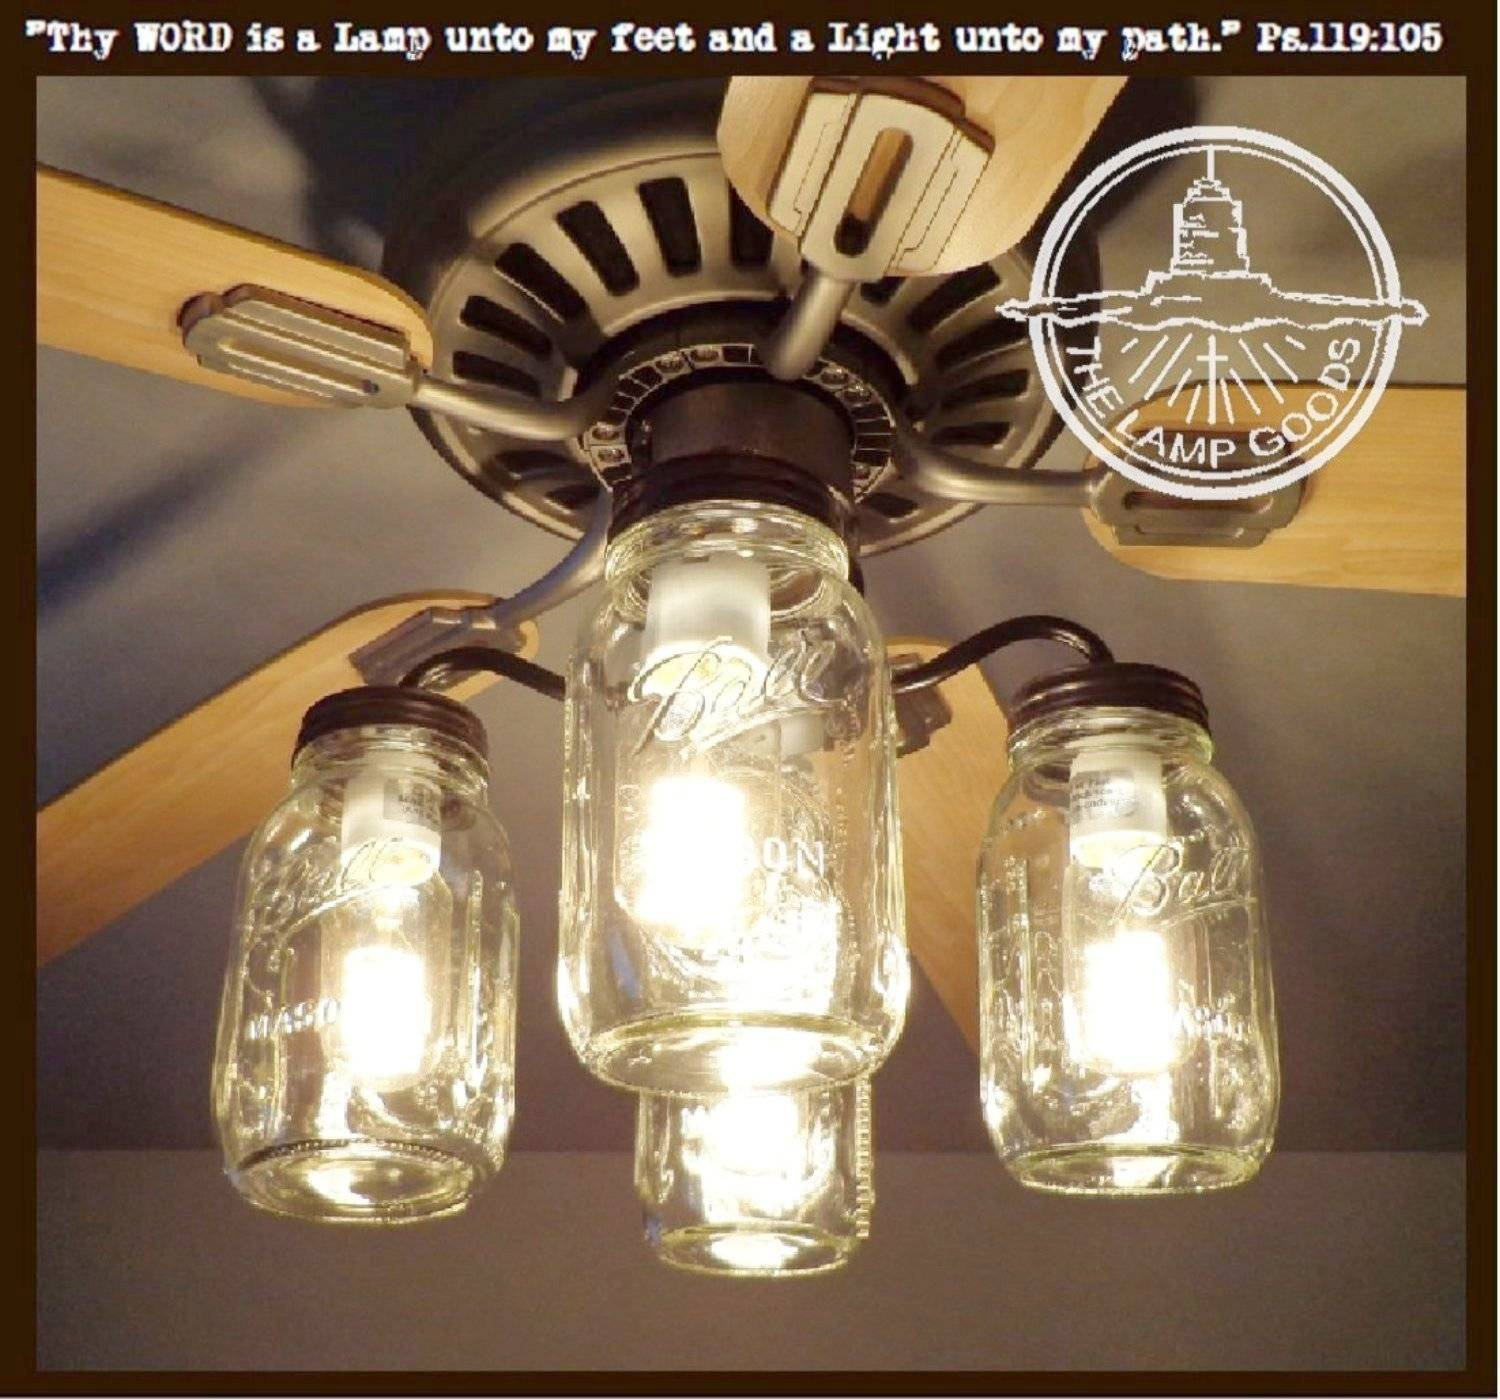 Mason jar ceiling fan Light Kit fixture New Quart Jag JPG